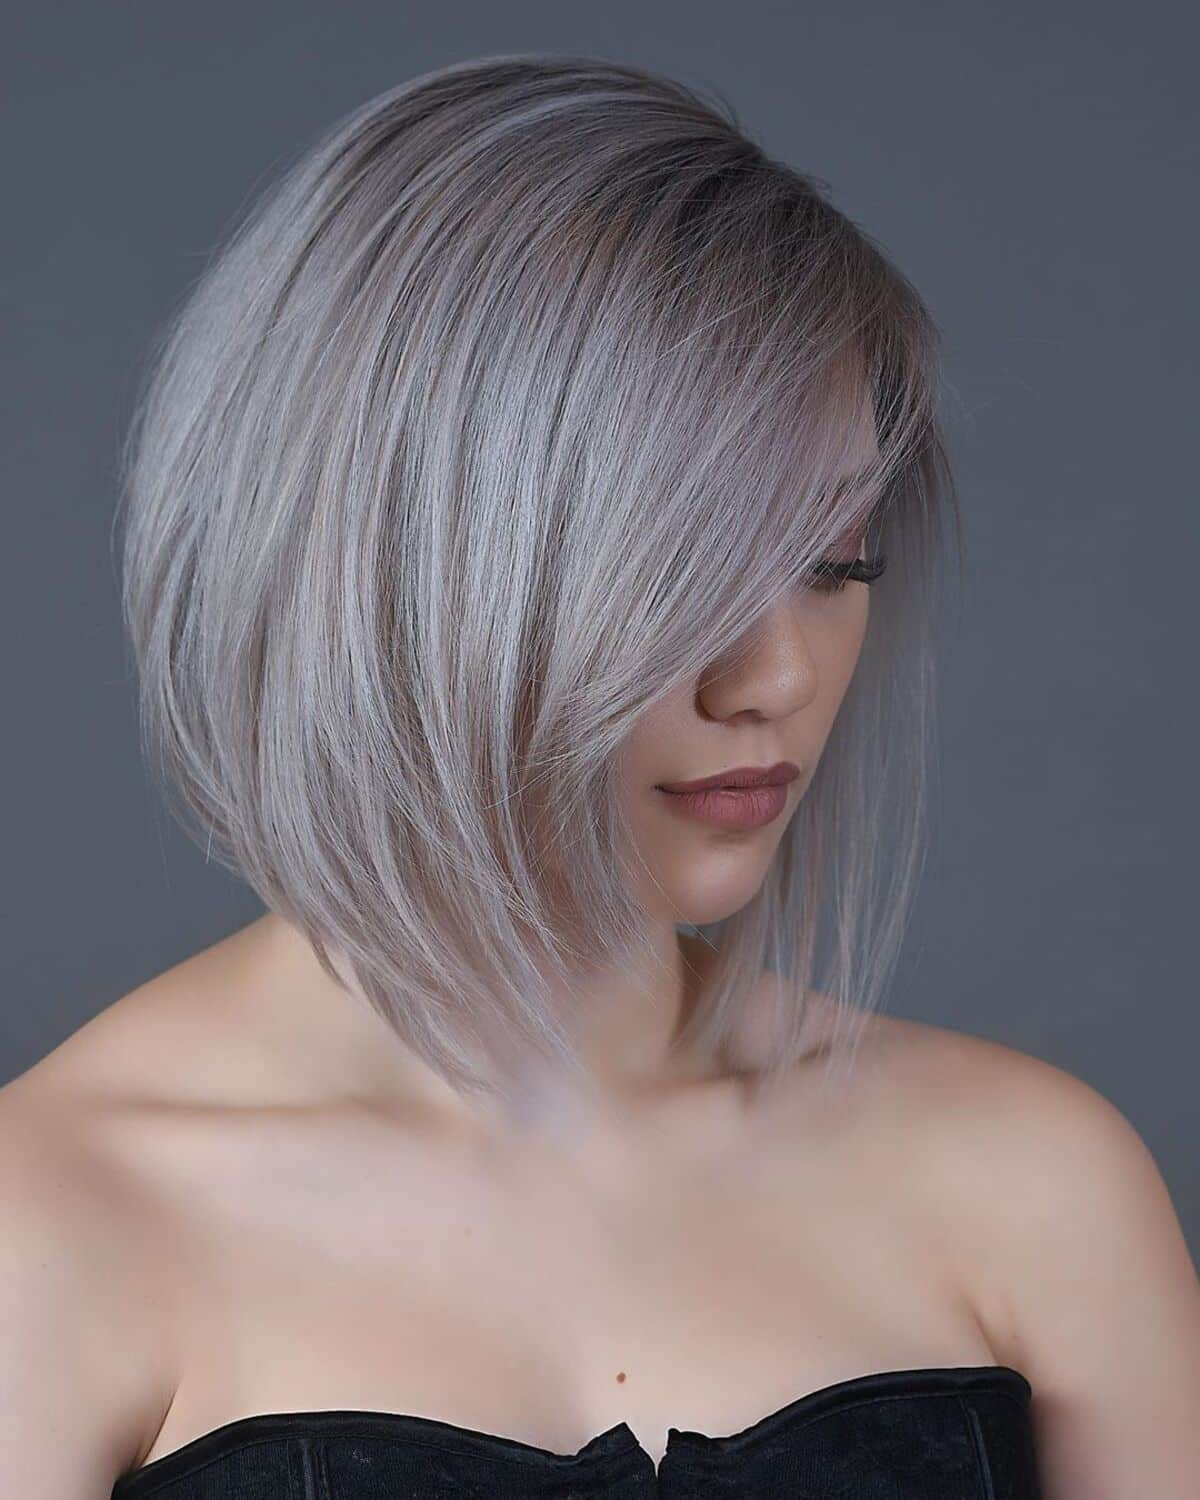 25 Most Popular Stacked Bob with Bangs for a Trendy Makeover Haircut